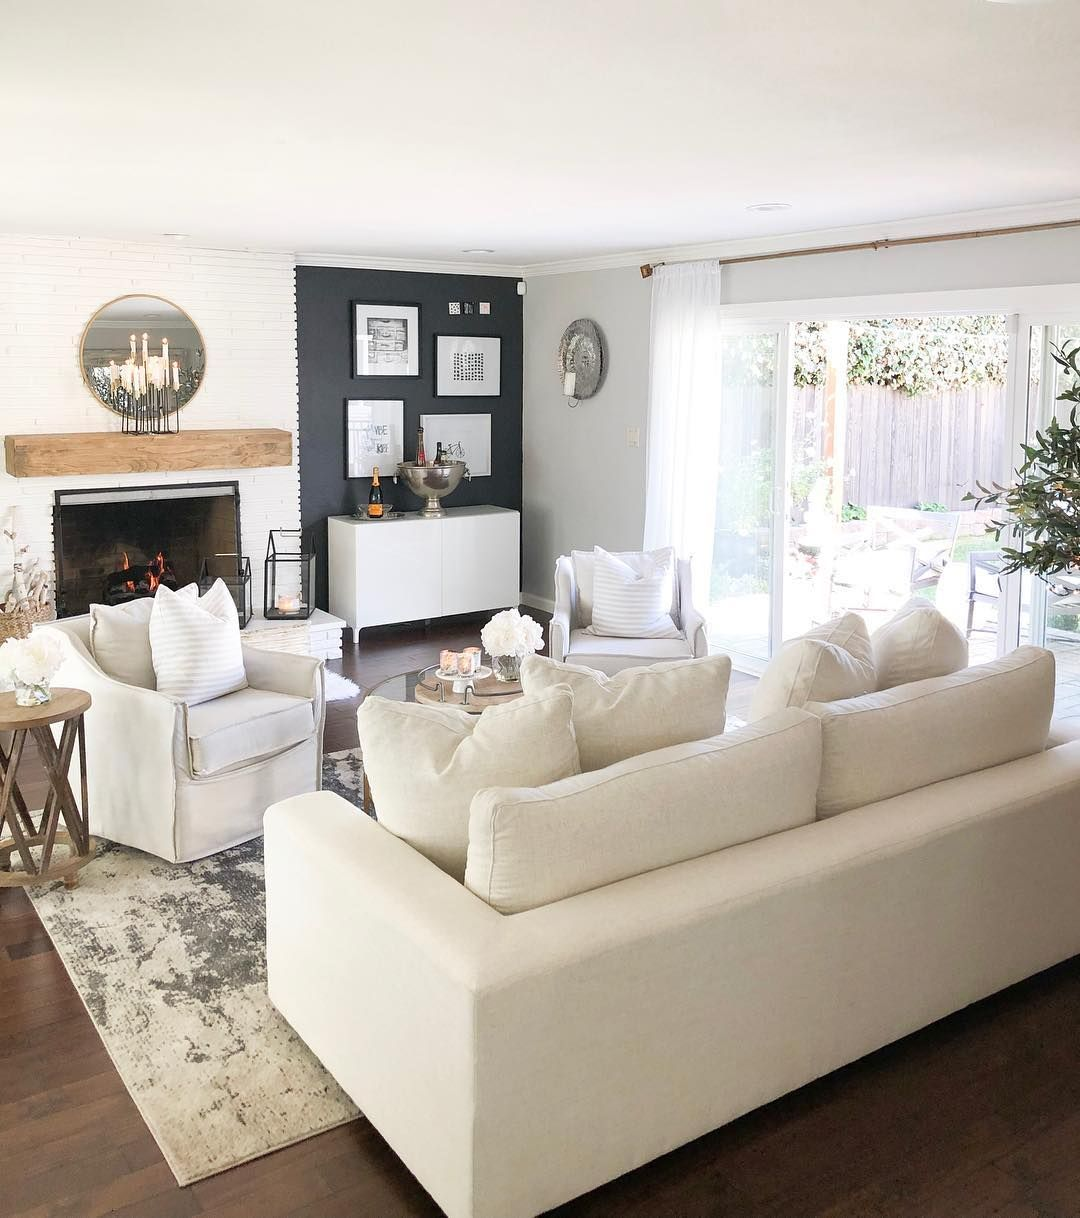 warm cozy aesthetics in this traditional chic living room ...